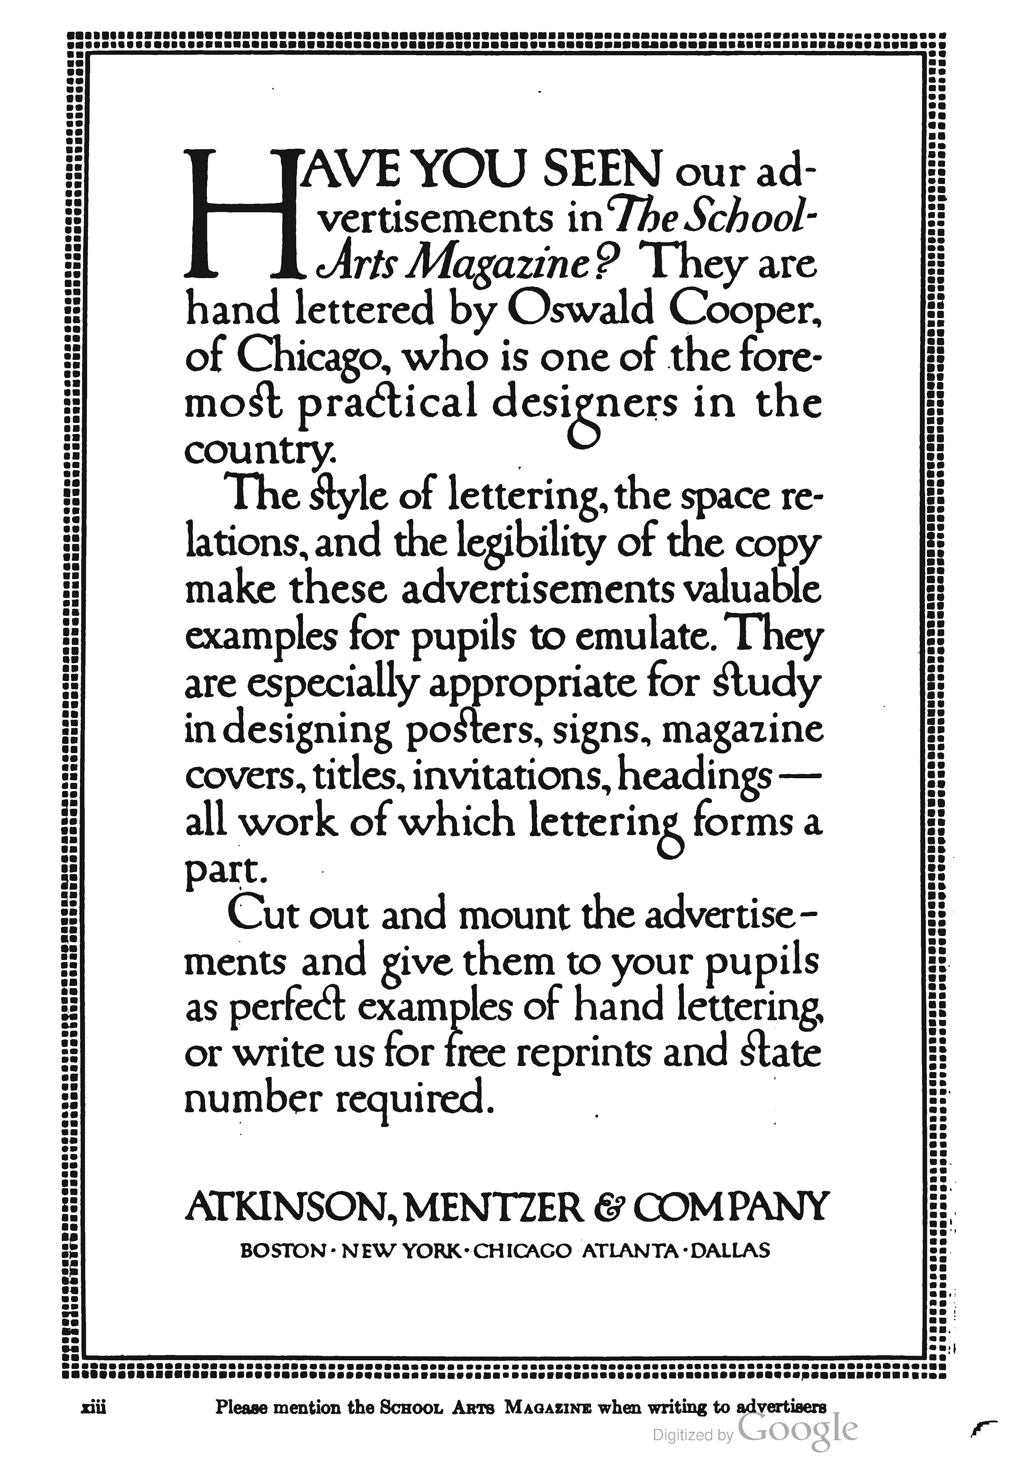 Advertisement for Atkinson, Mentzer & Company in The School Arts Magazine (1913). Handlettered by Oswald Cooper.